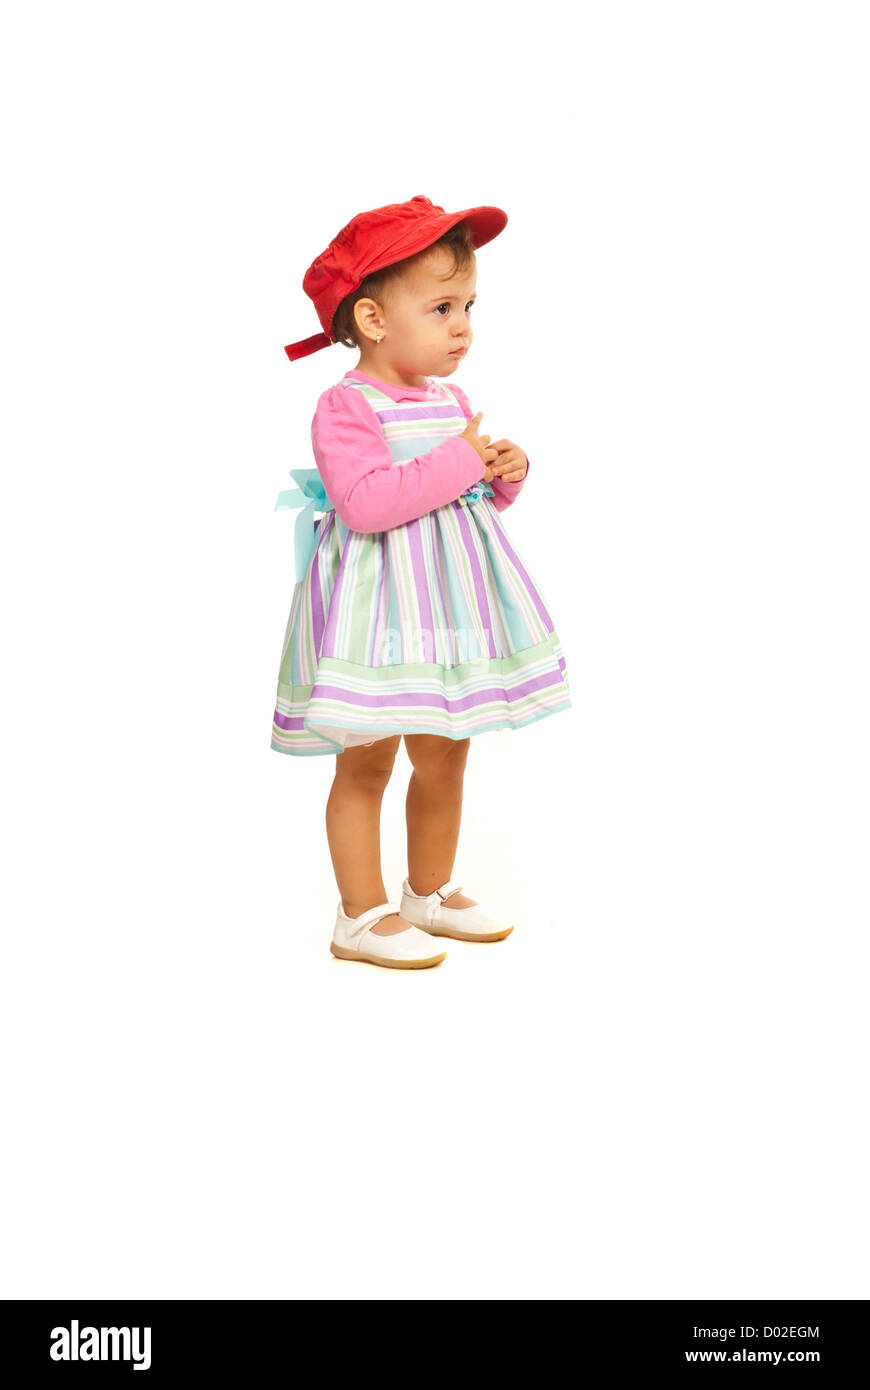 c2f42ca9 Full length of beauty toddler girl looking away isolated on white  background - Stock Image